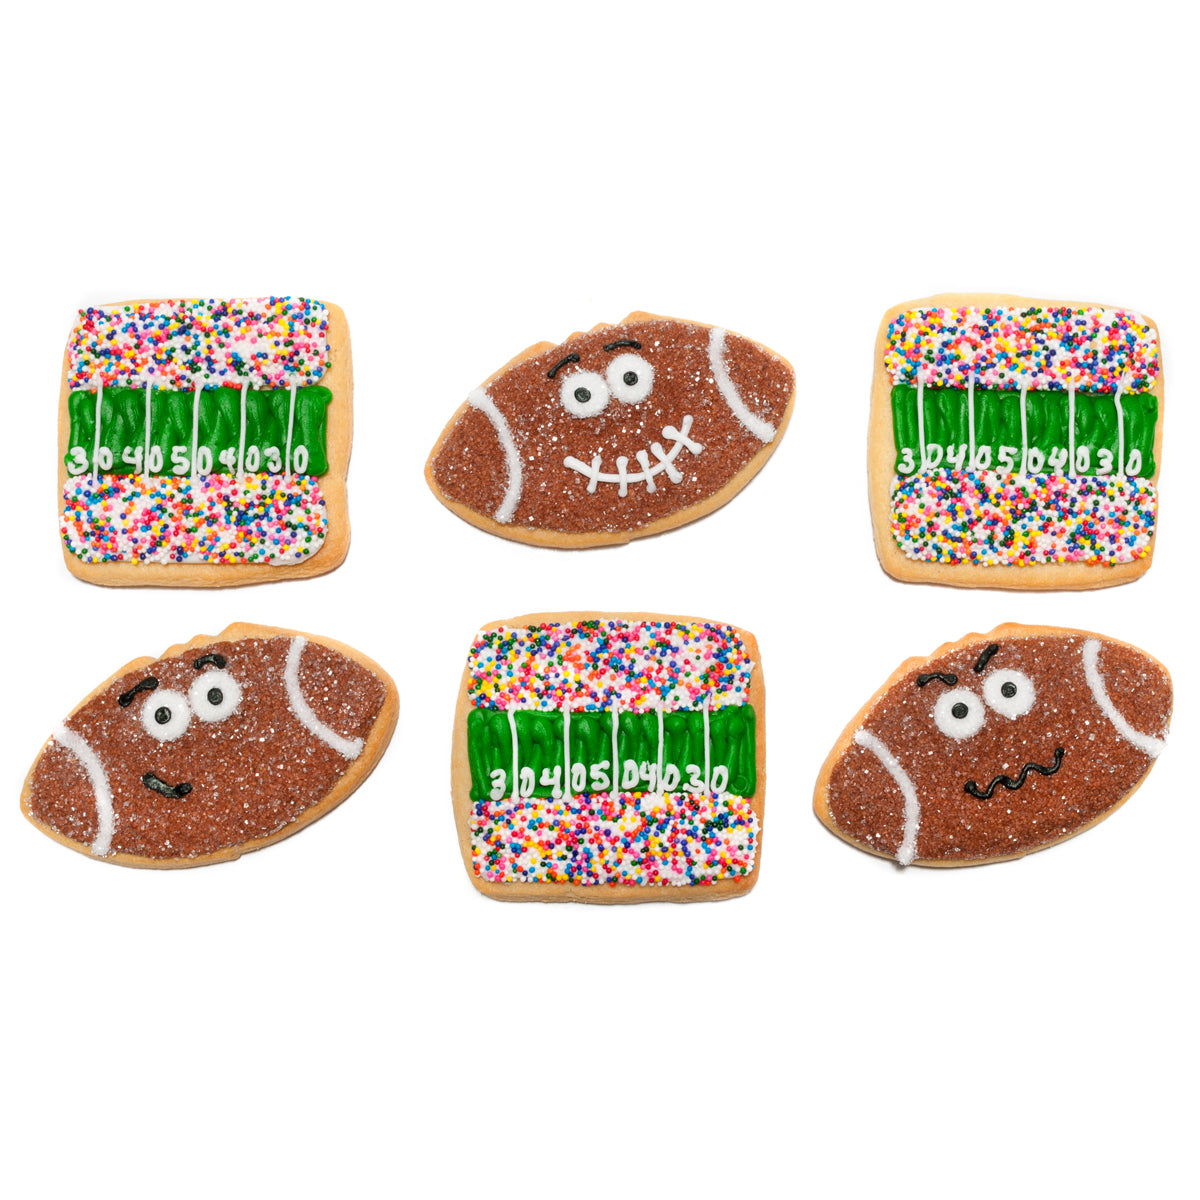 A Dozen Decorated Football Cookies